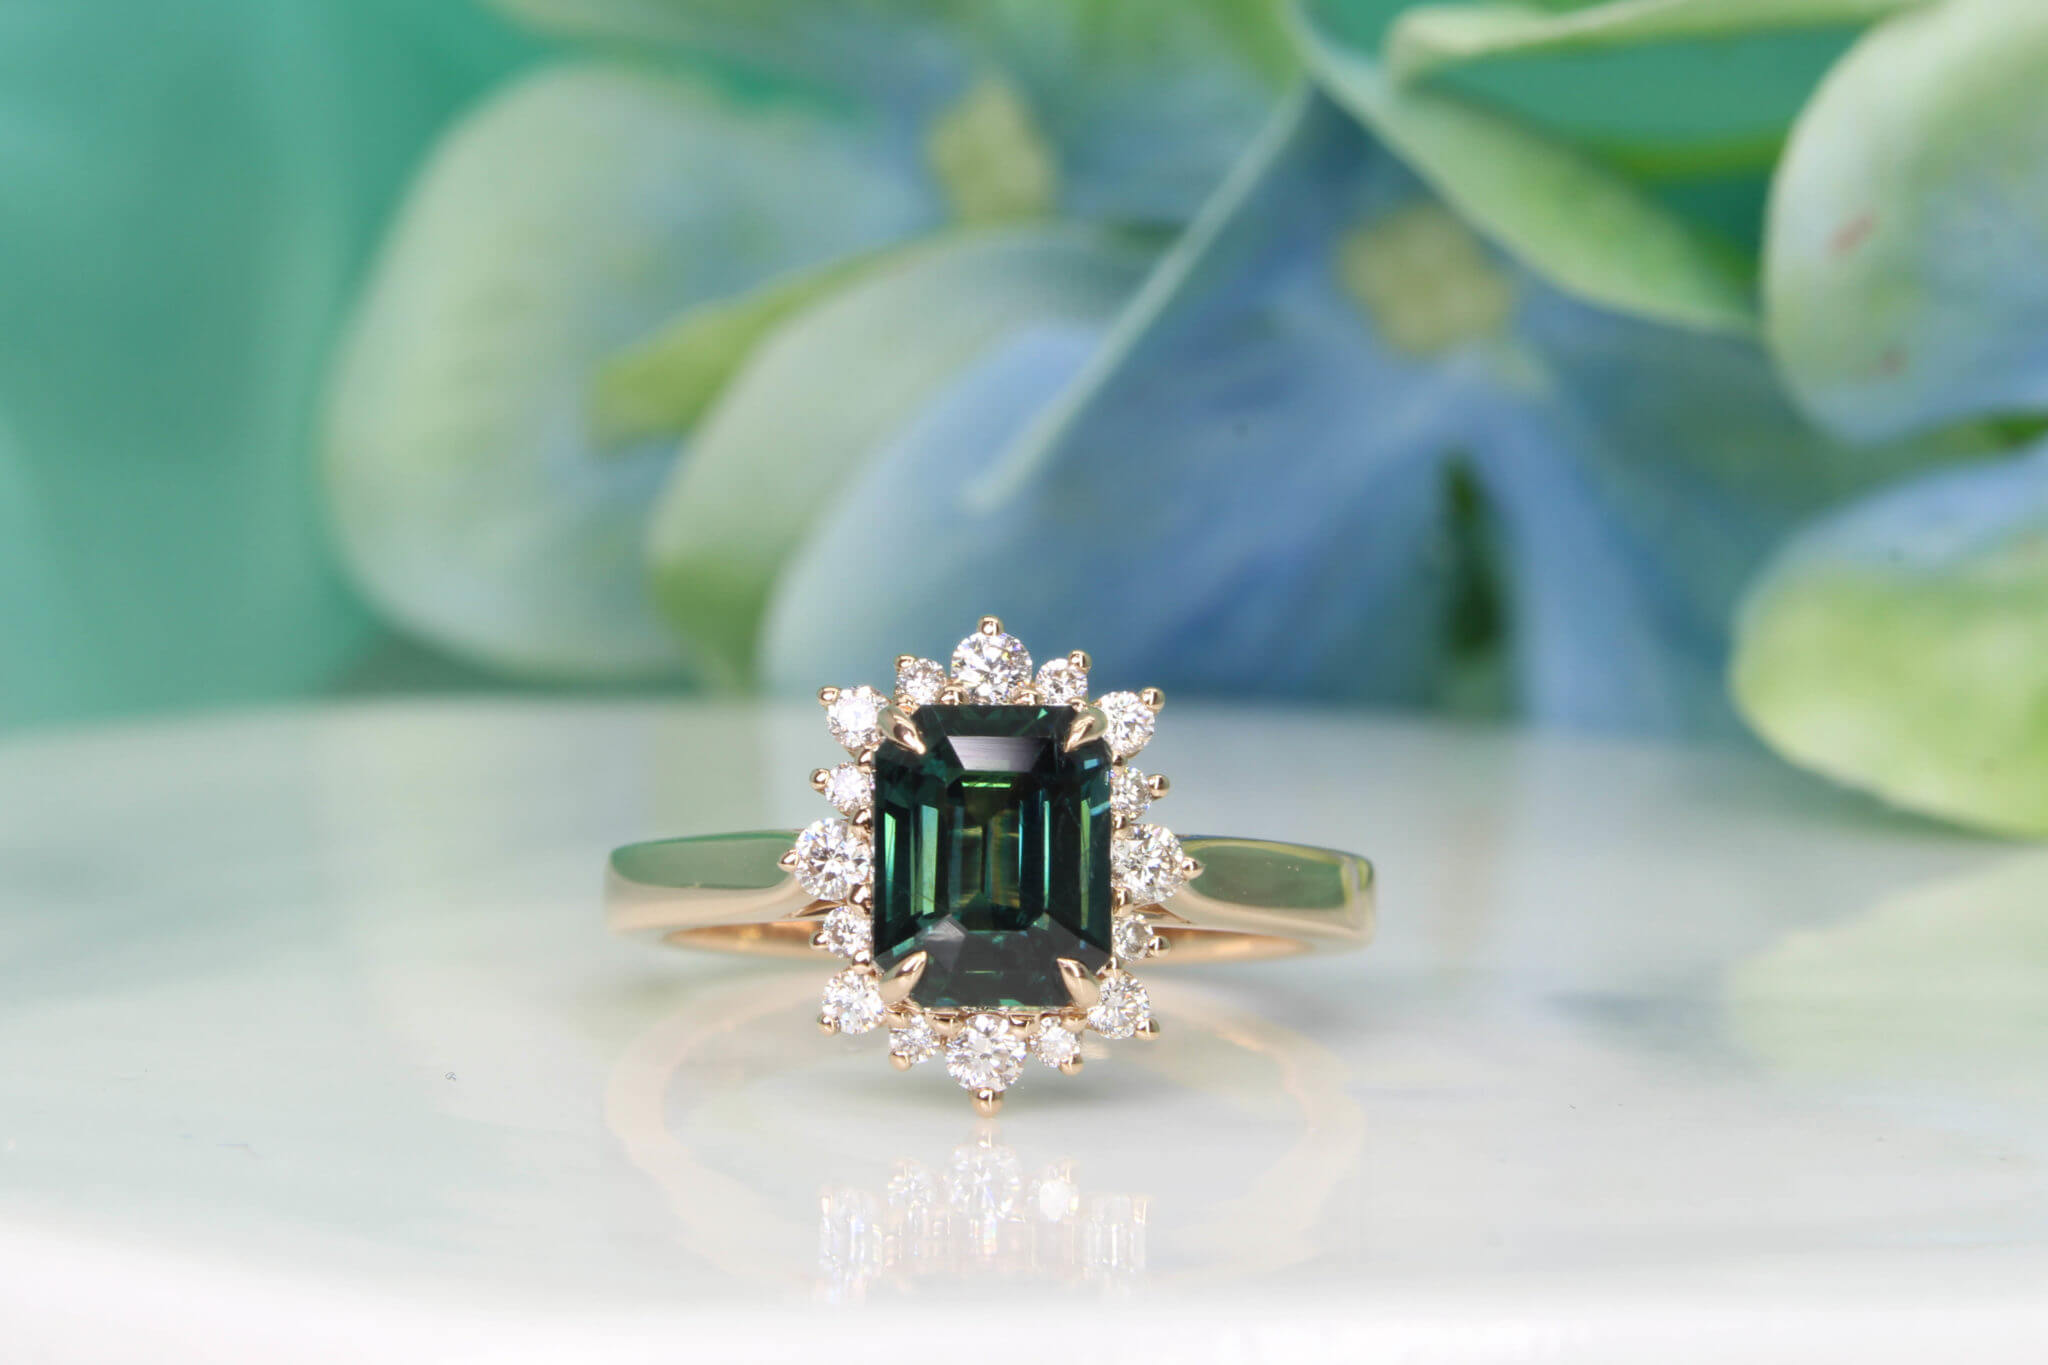 Teal Sapphire Engagement ring customised with alternate sizes diamond, gives a star burst look to the overall design.Crafted in 750 18k Rose gold bands, regal and radiant, this exquisite engagement ring was crafted to perfection   Customised Engagement Ring Teal Sapphire Singapore